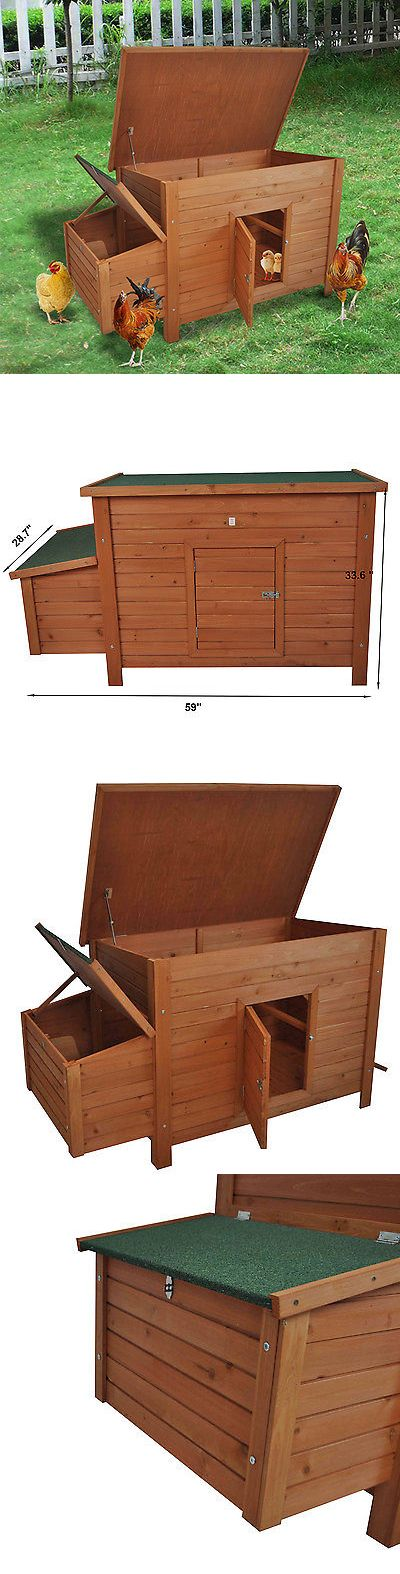 Backyard Poultry Supplies 177801: Pawhut Backyard Wooden Chicken Coop Hutch Poultry Nesting Cage Hen Habitat House -> BUY IT NOW ONLY: $129.99 on eBay!